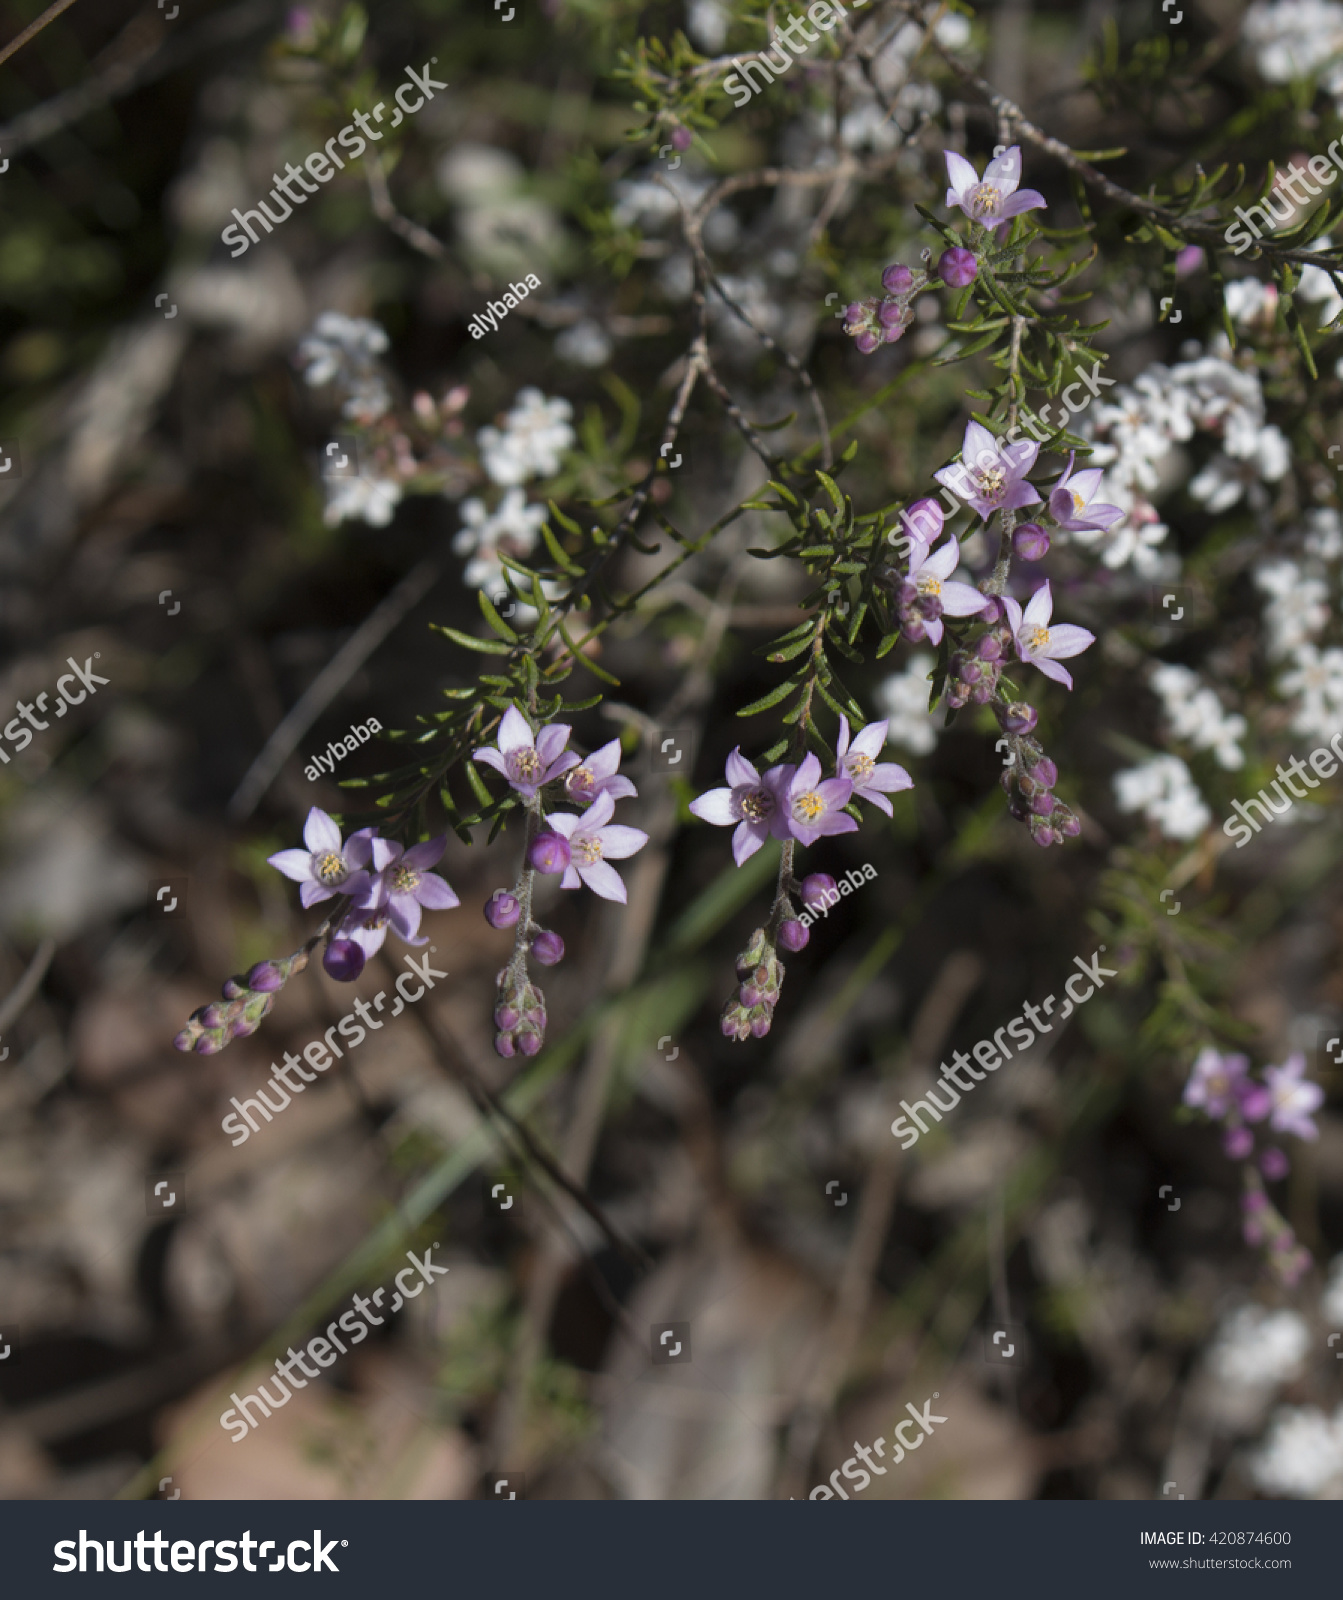 Royalty Free Delicate Pink Flowers Of Rare West 420874600 Stock